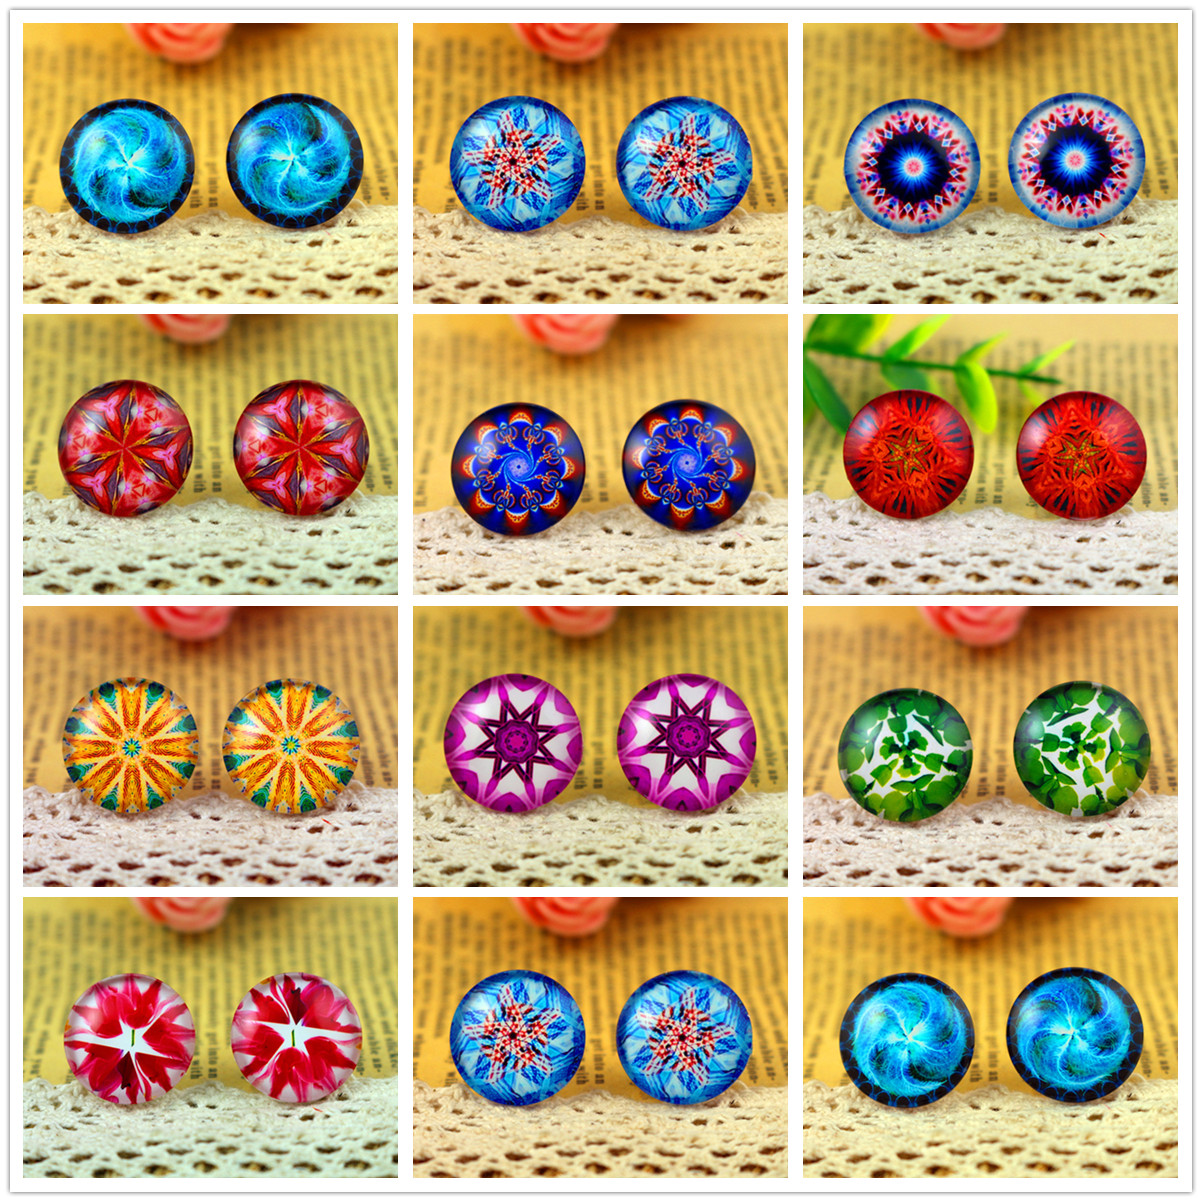 2018 Hot Sale 10pcs 20mm Handmade Photo Glass Cabochons (Color Line Series)